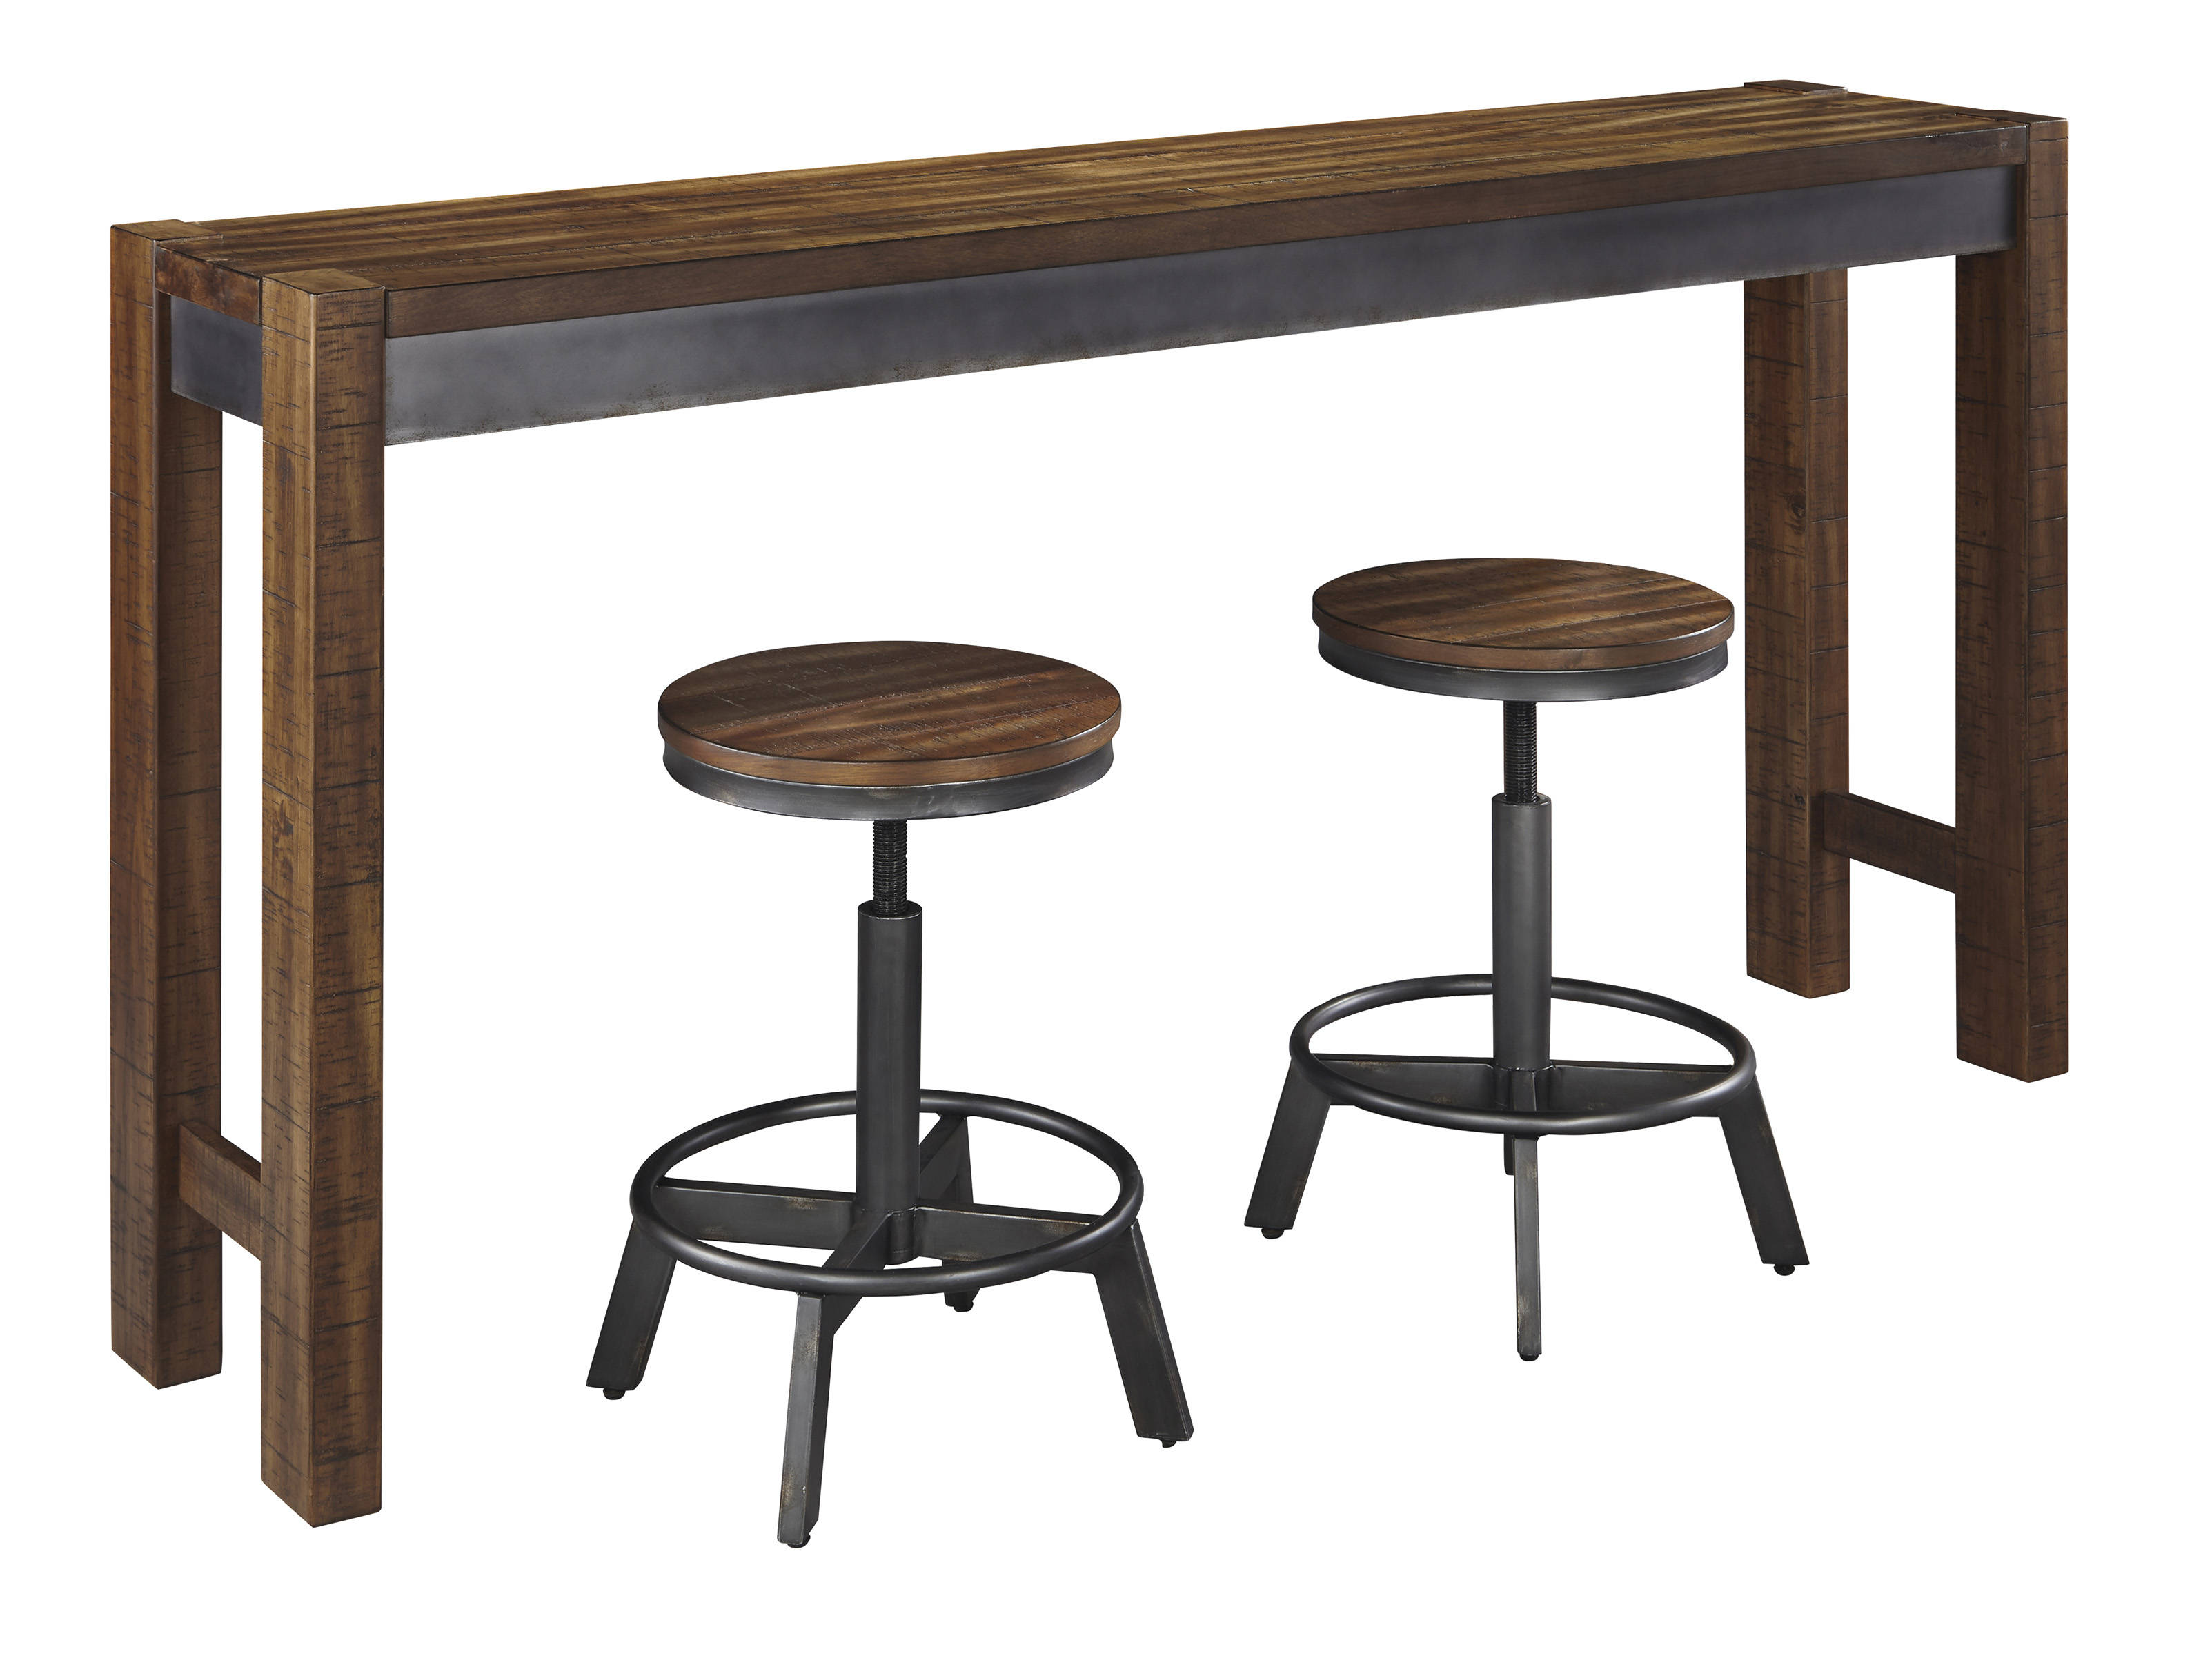 Ashley Furniture Torjin 3pc Counter Height Set The